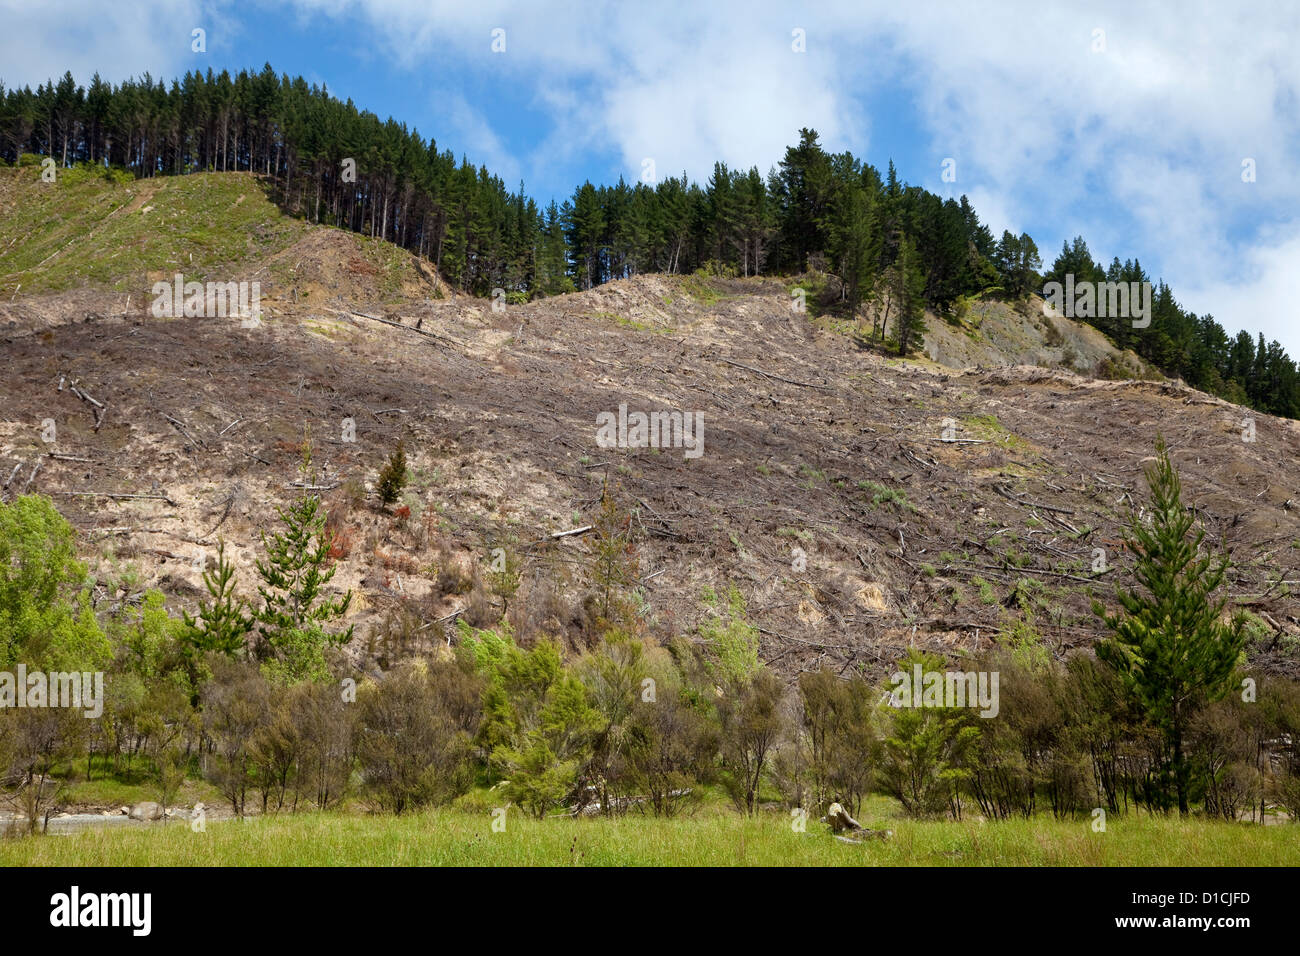 Silviculture. Hillside Harvested of Trees. East Cape, North island, New Zealand, from Highway 35. - Stock Image